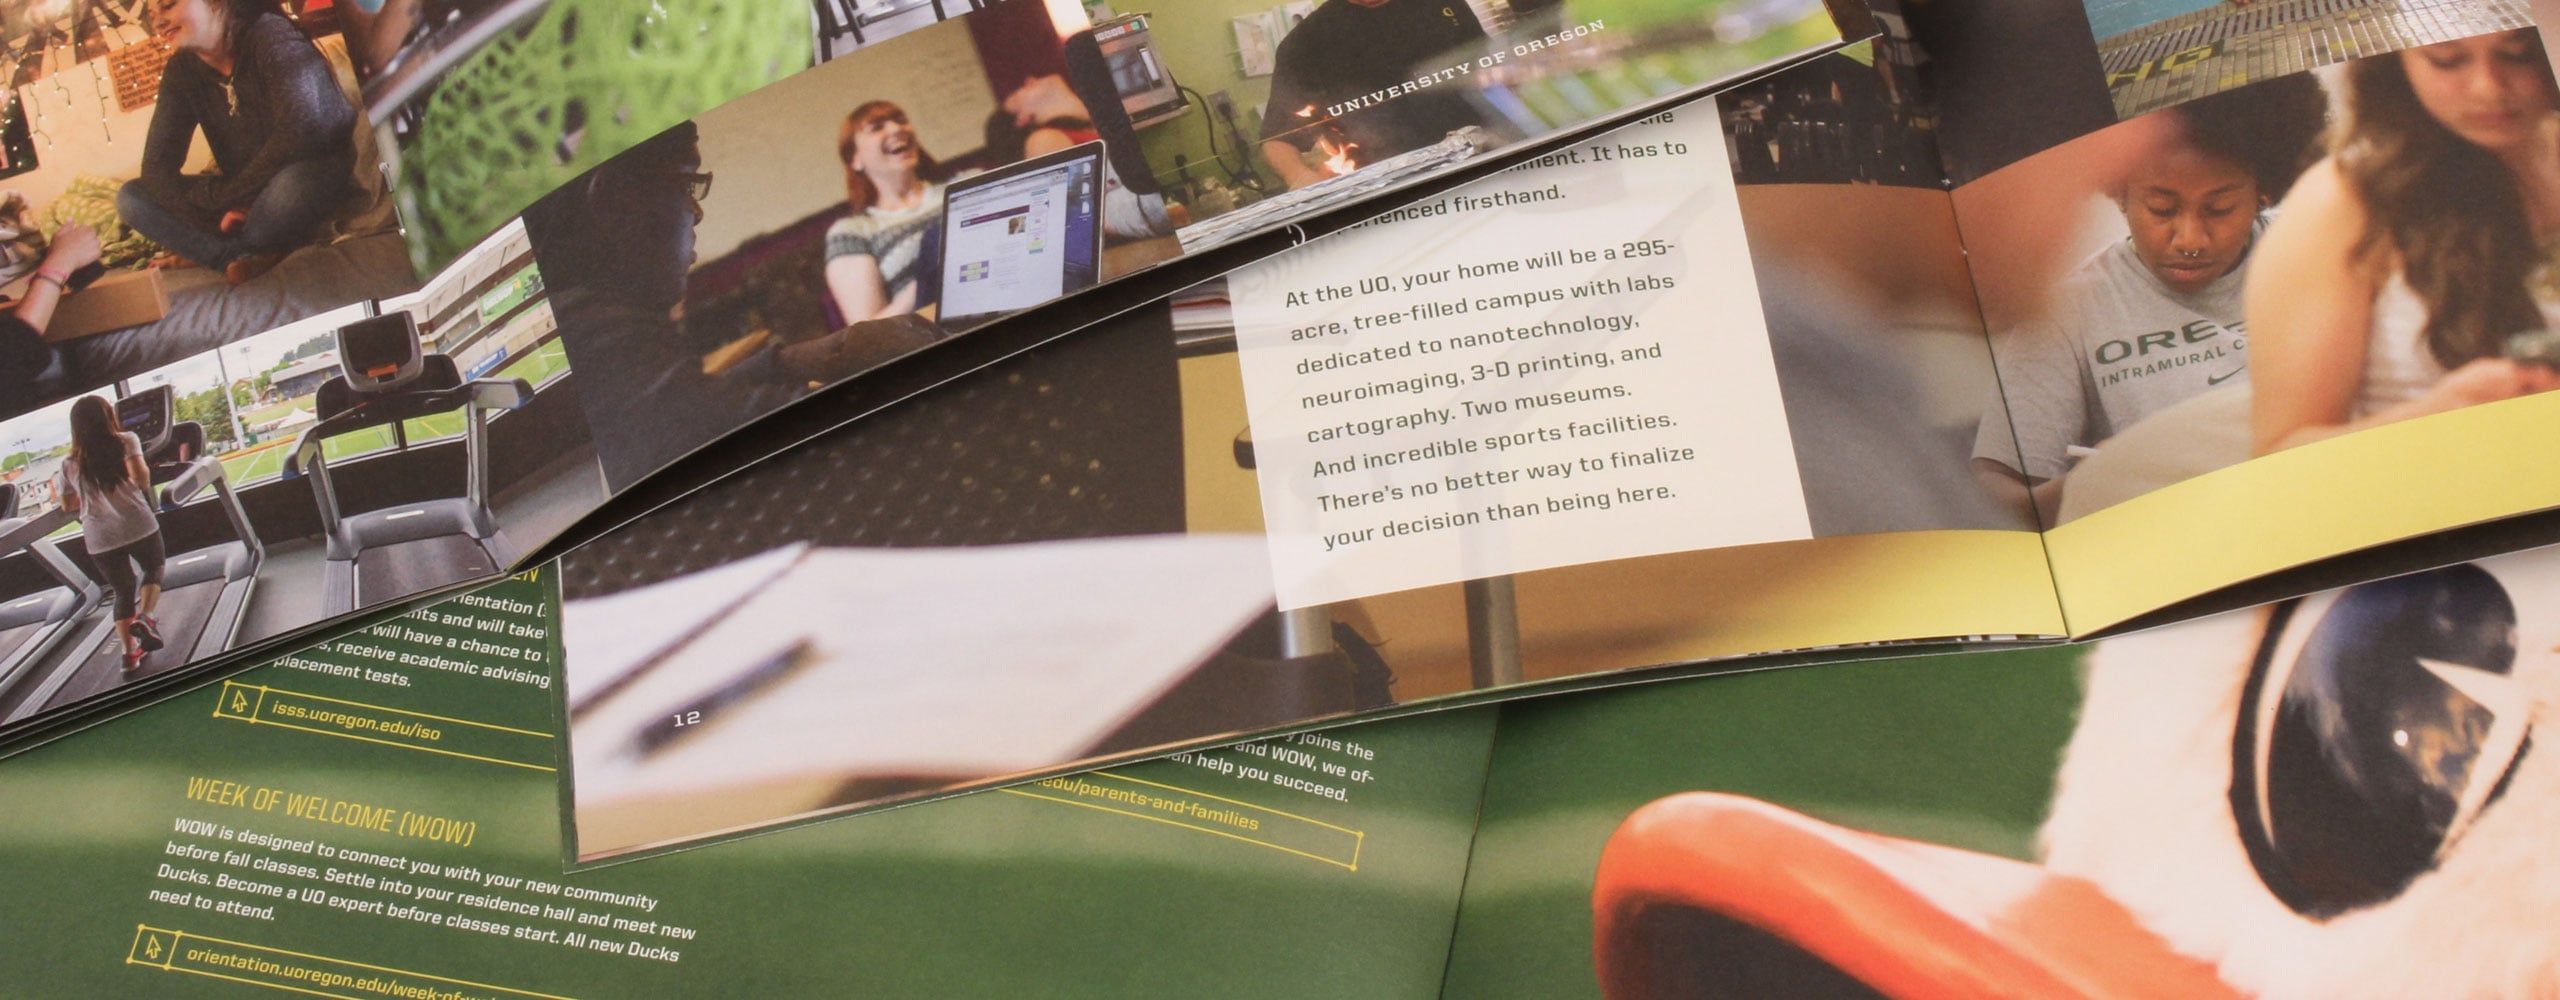 Digital Printing U of O brochures